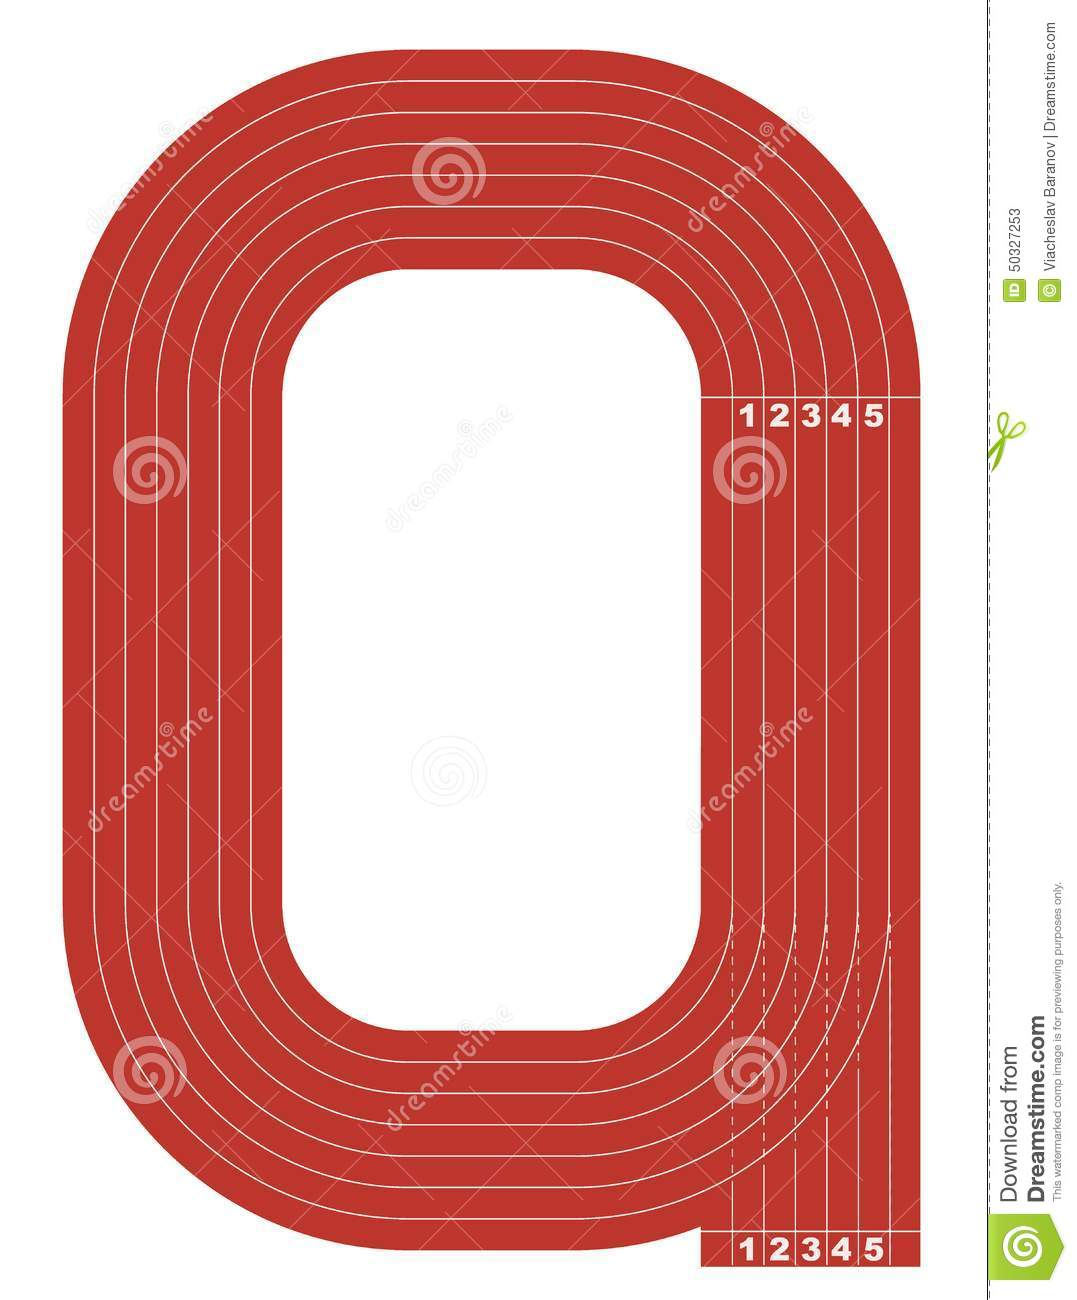 diagram of football ground with measurements 4 way switch wiring light middle field dimensions college